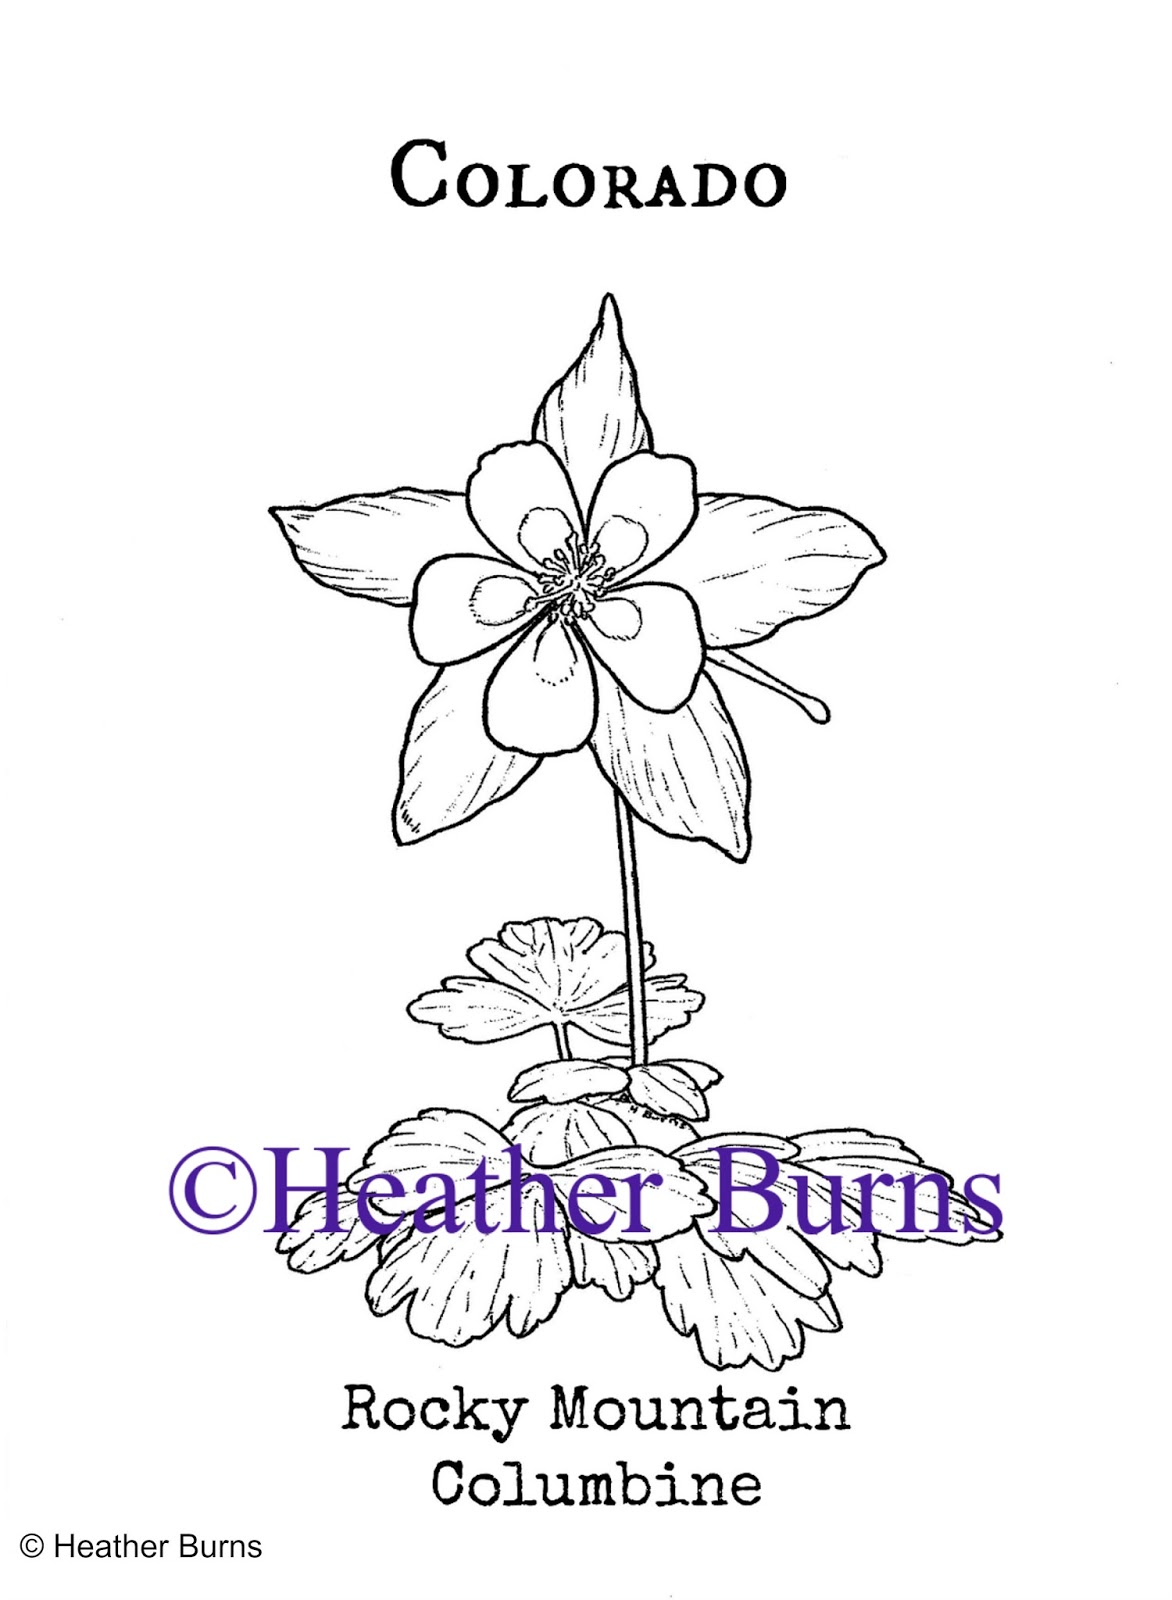 rocky mountain columbine coloring pages - photo#5